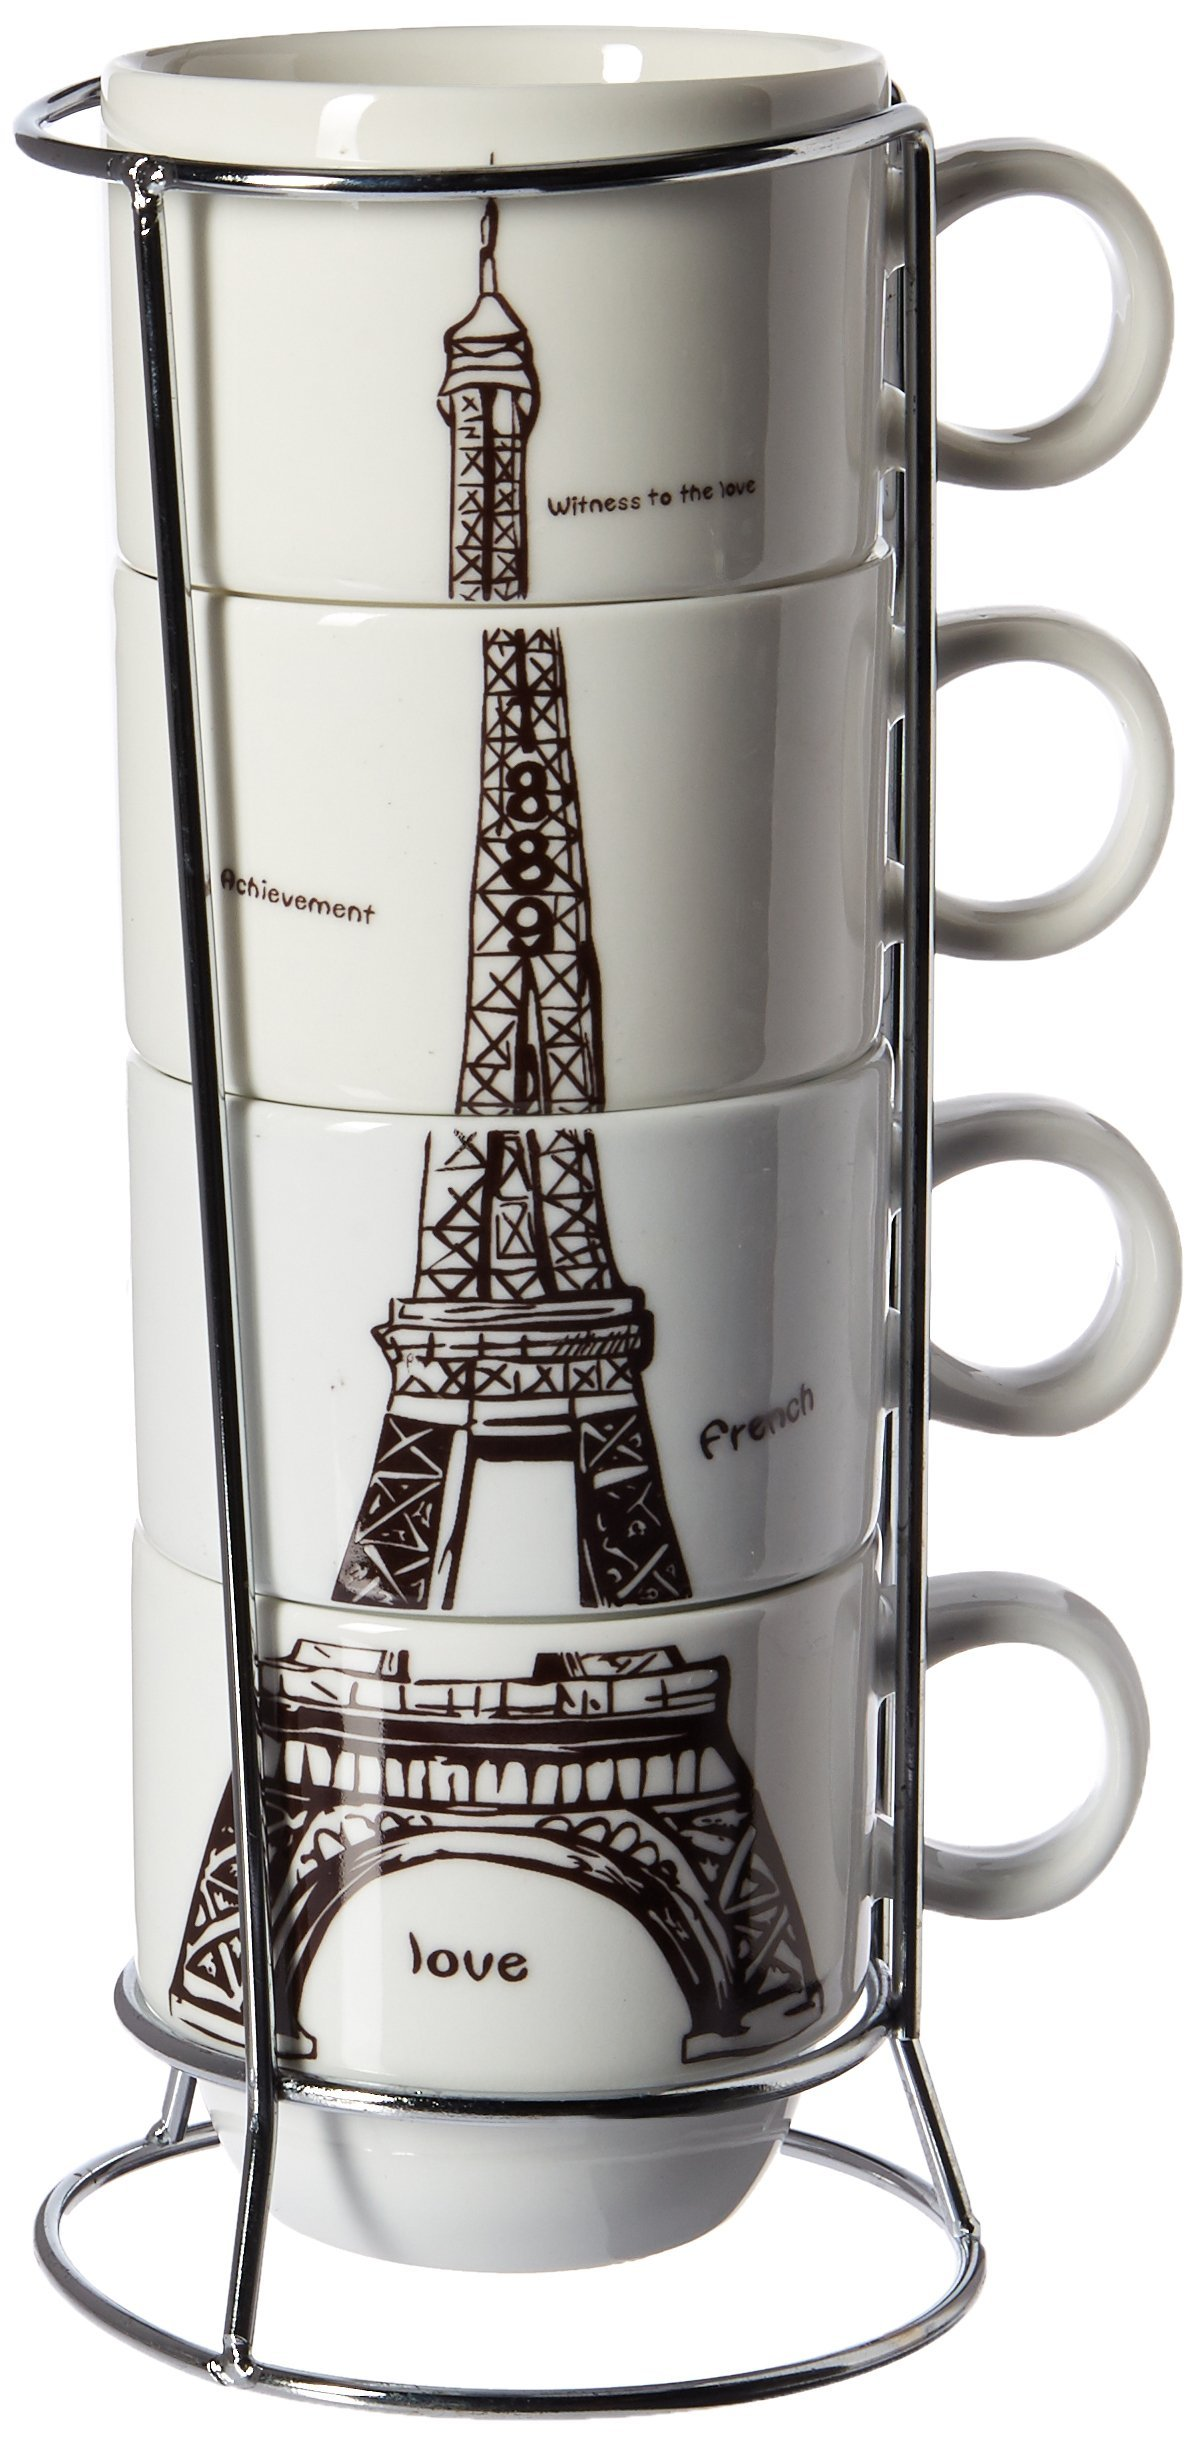 6910 Uniware Chic Eiffel Tower Paris Stacking Porcelain Expresso Coffee Mug with Stainless Steel Frame ( Set of 4 )